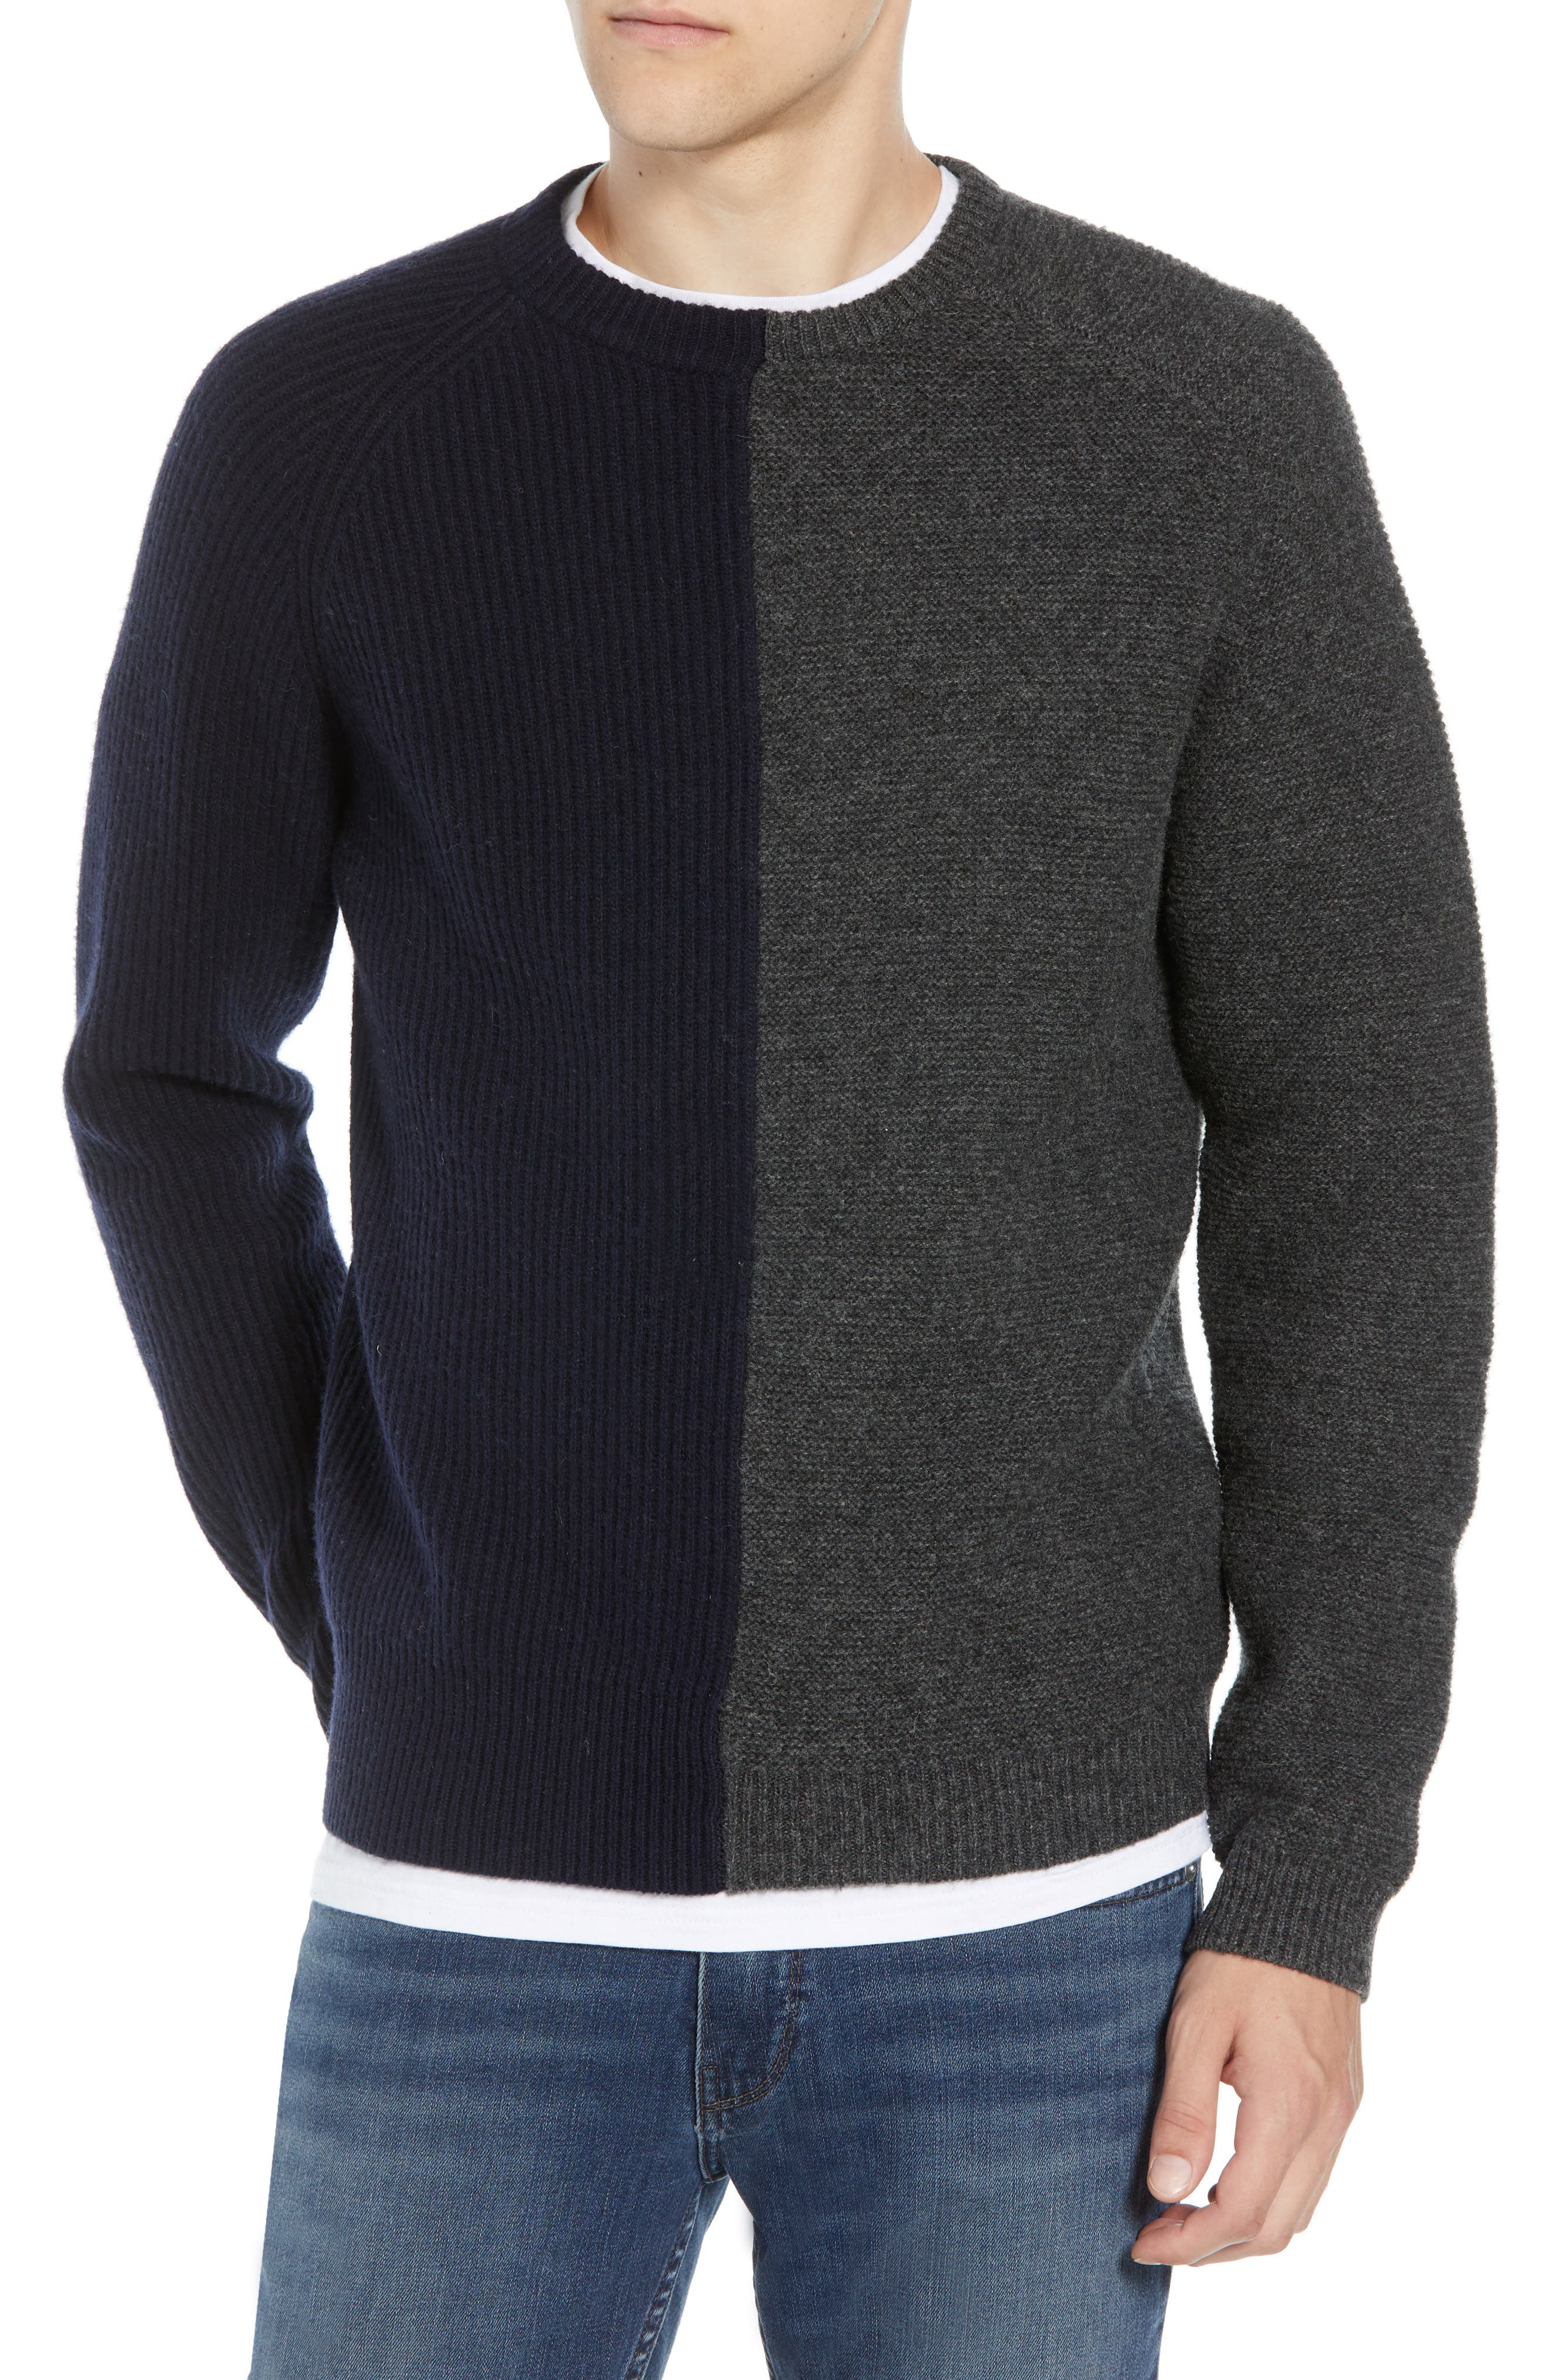 Mixed Texture Wool Blend Sweater,                             Main thumbnail 1, color,                             UTILITY BLUE CHARCOAL MELANGE